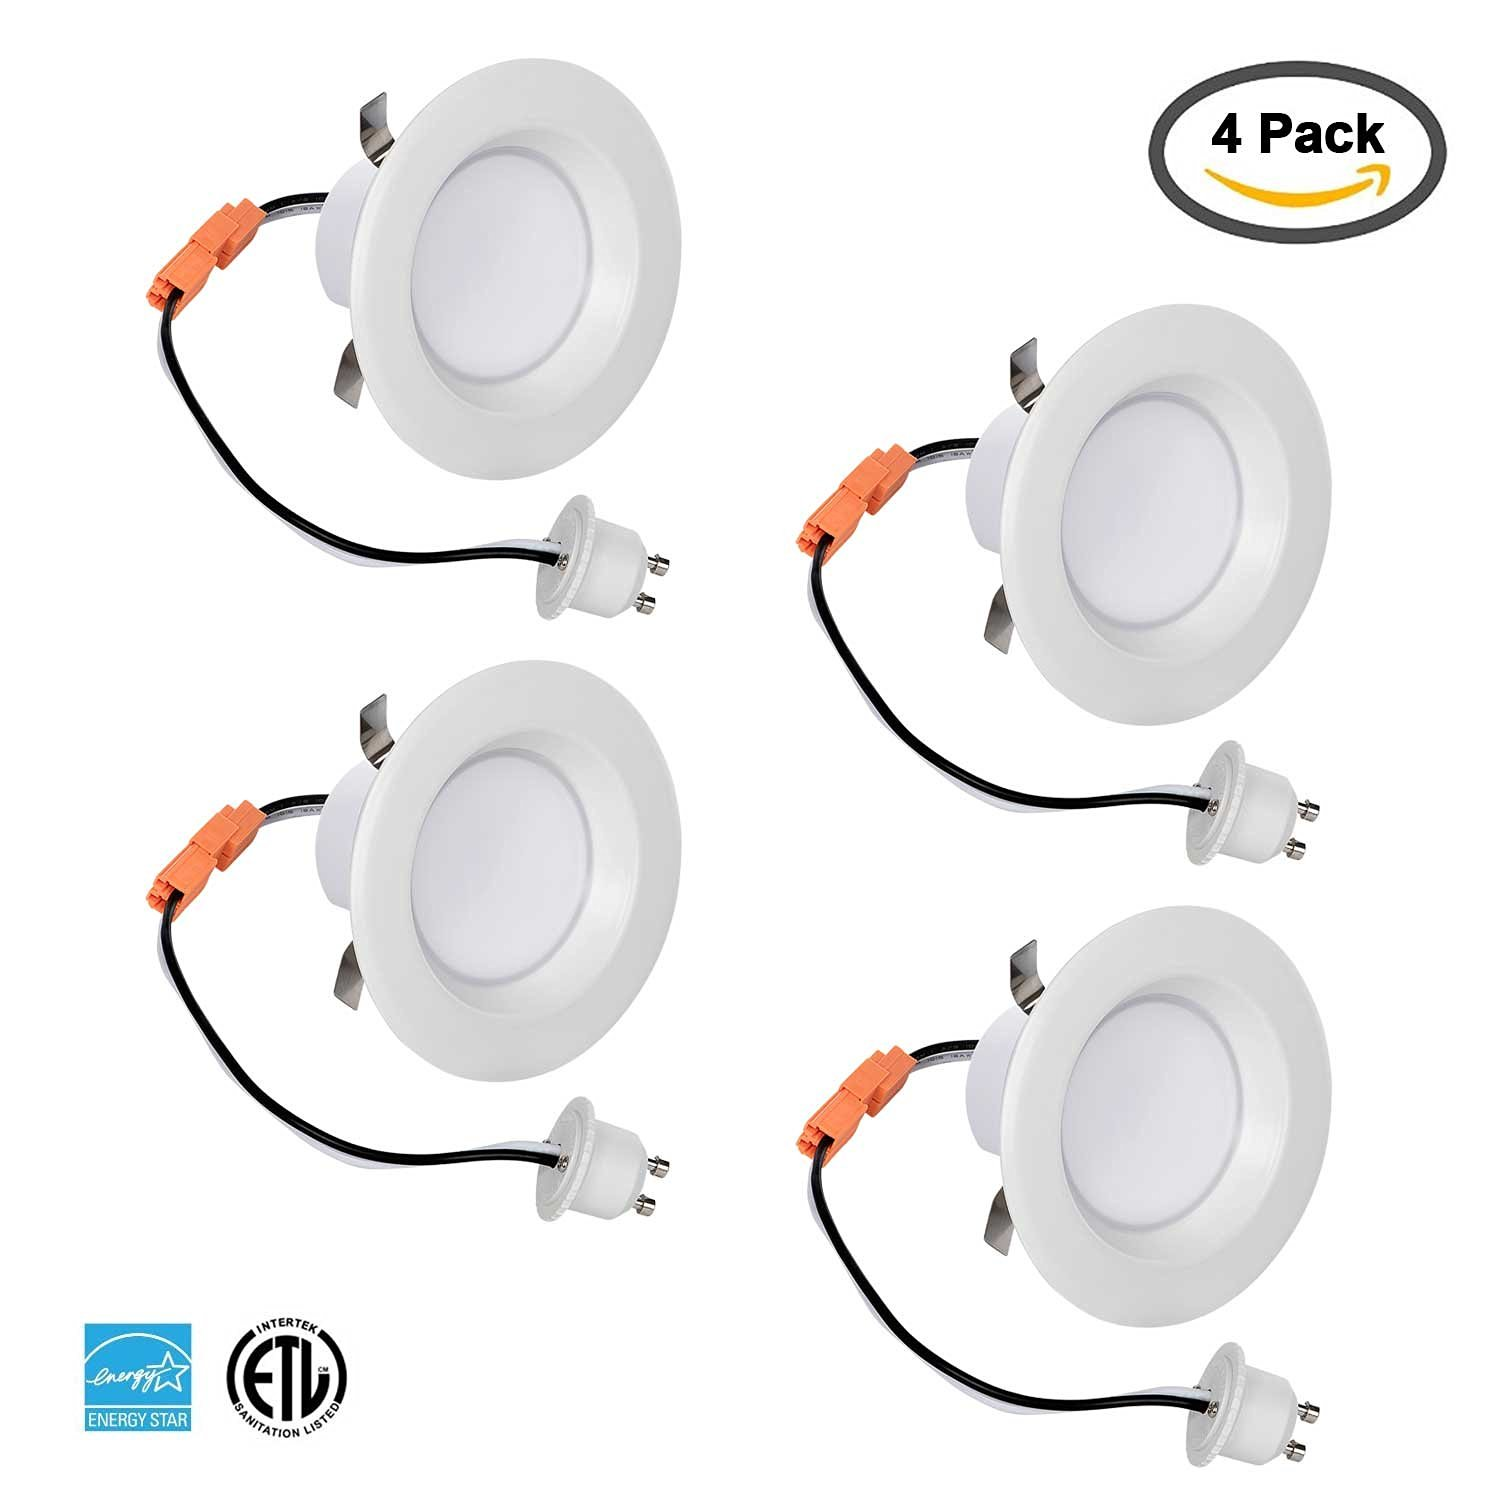 Buy chichinlighting 3 pack 3 inch led recessed lighting led light blue 4 pack 3 inch led downlight retrofit gu10 base 8 watt 50w soft white 3000k led retrofit recessed lighting fixture 560 lumens dimmable aloadofball Image collections